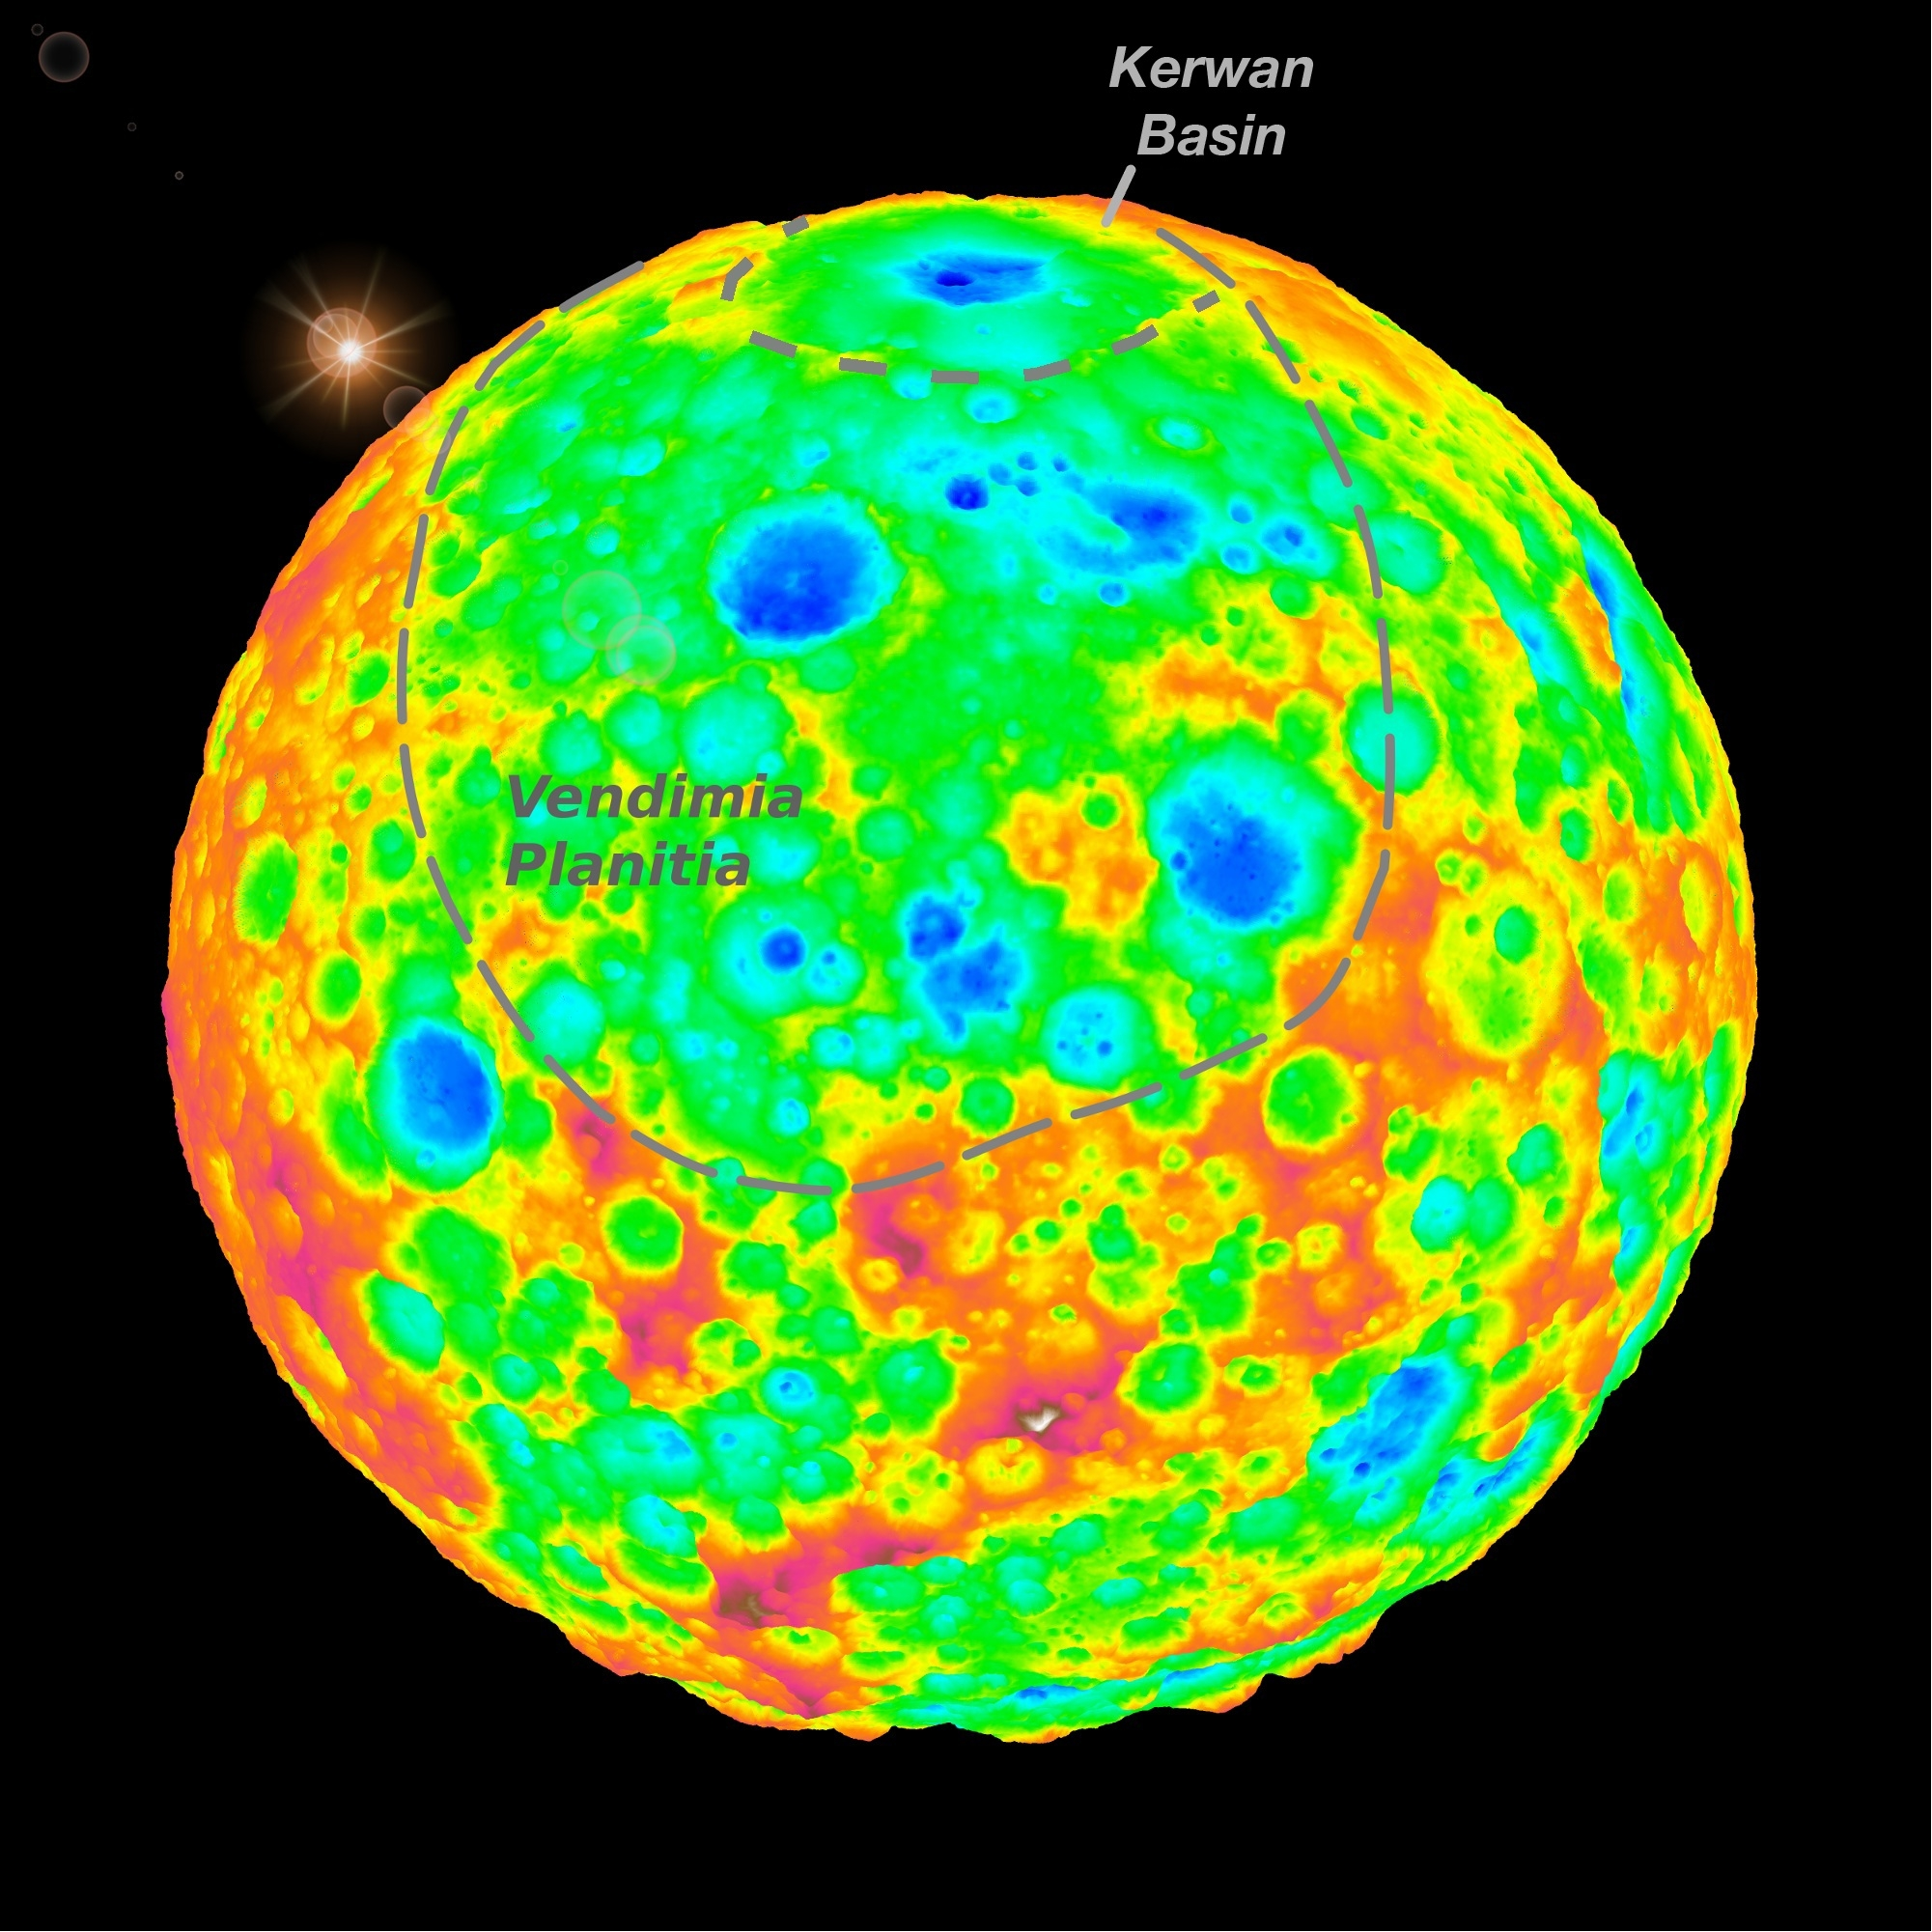 Topography of dwarf planet Ceres from Dawn spacecraft data